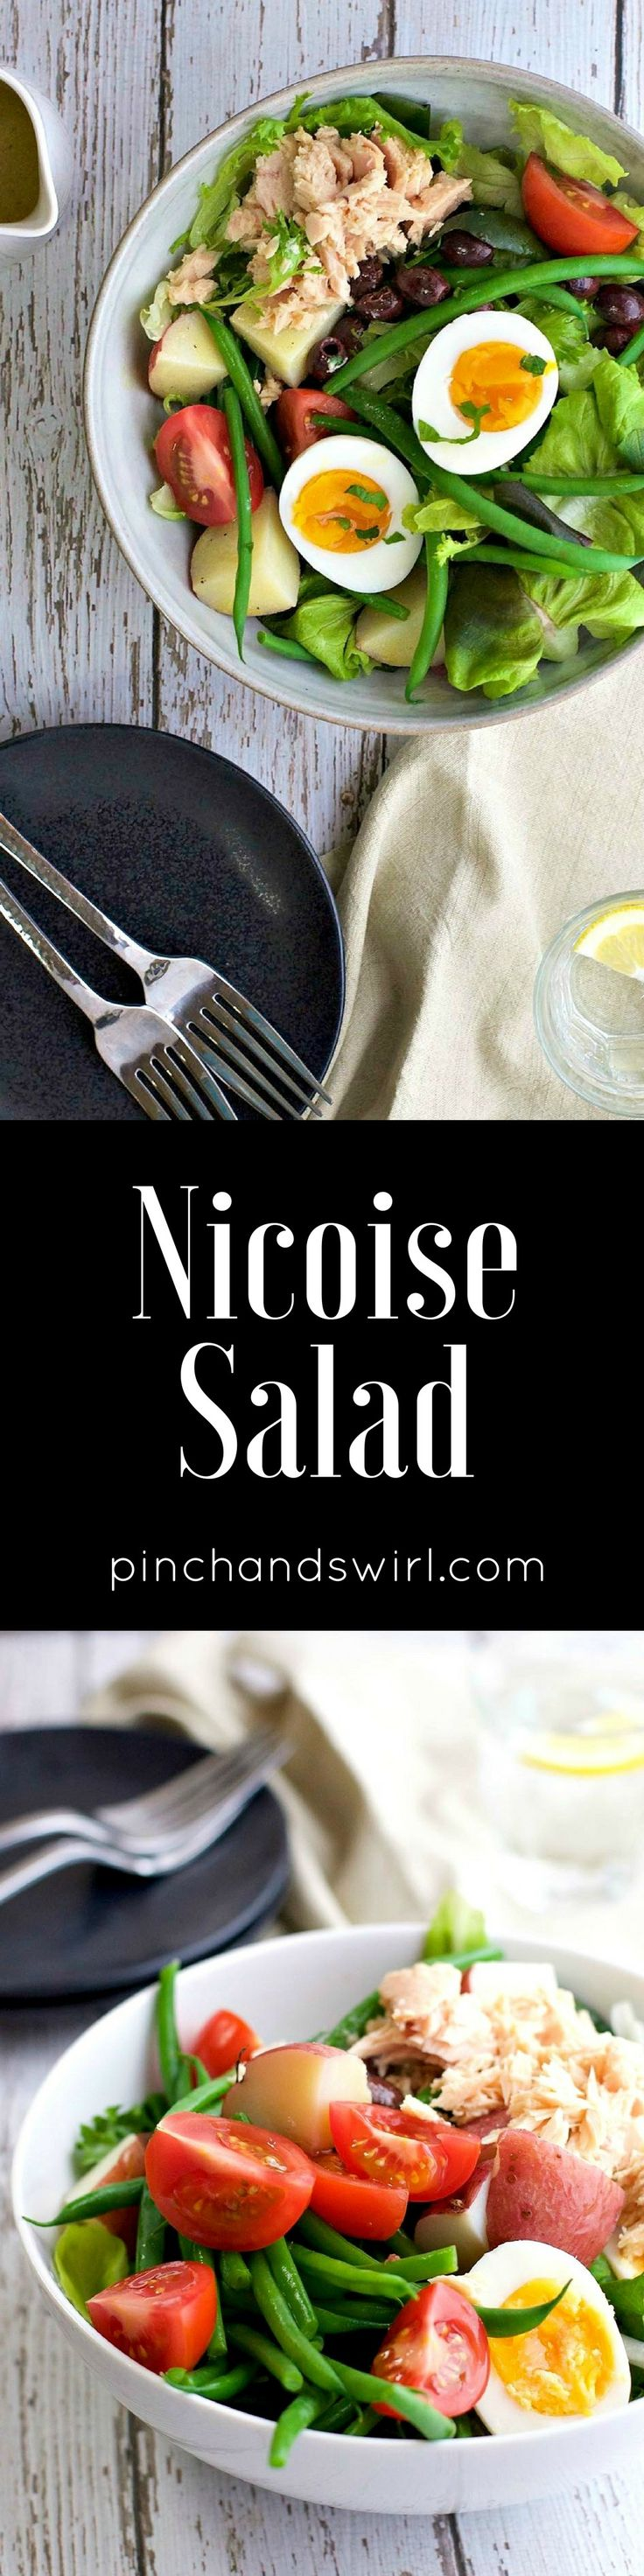 Nicoise salad is so easy to make and you can switch up the ingredients for what's in season. Tuna Nicoise salad is my absolute favorite. It's amazing that a can of good tuna, ripe tomatoes, tender green beans, perfectly cooked eggs and potatoes, briny olives and a simple mustardy dressing can make one of the most flavorful and satisfying meals there is!